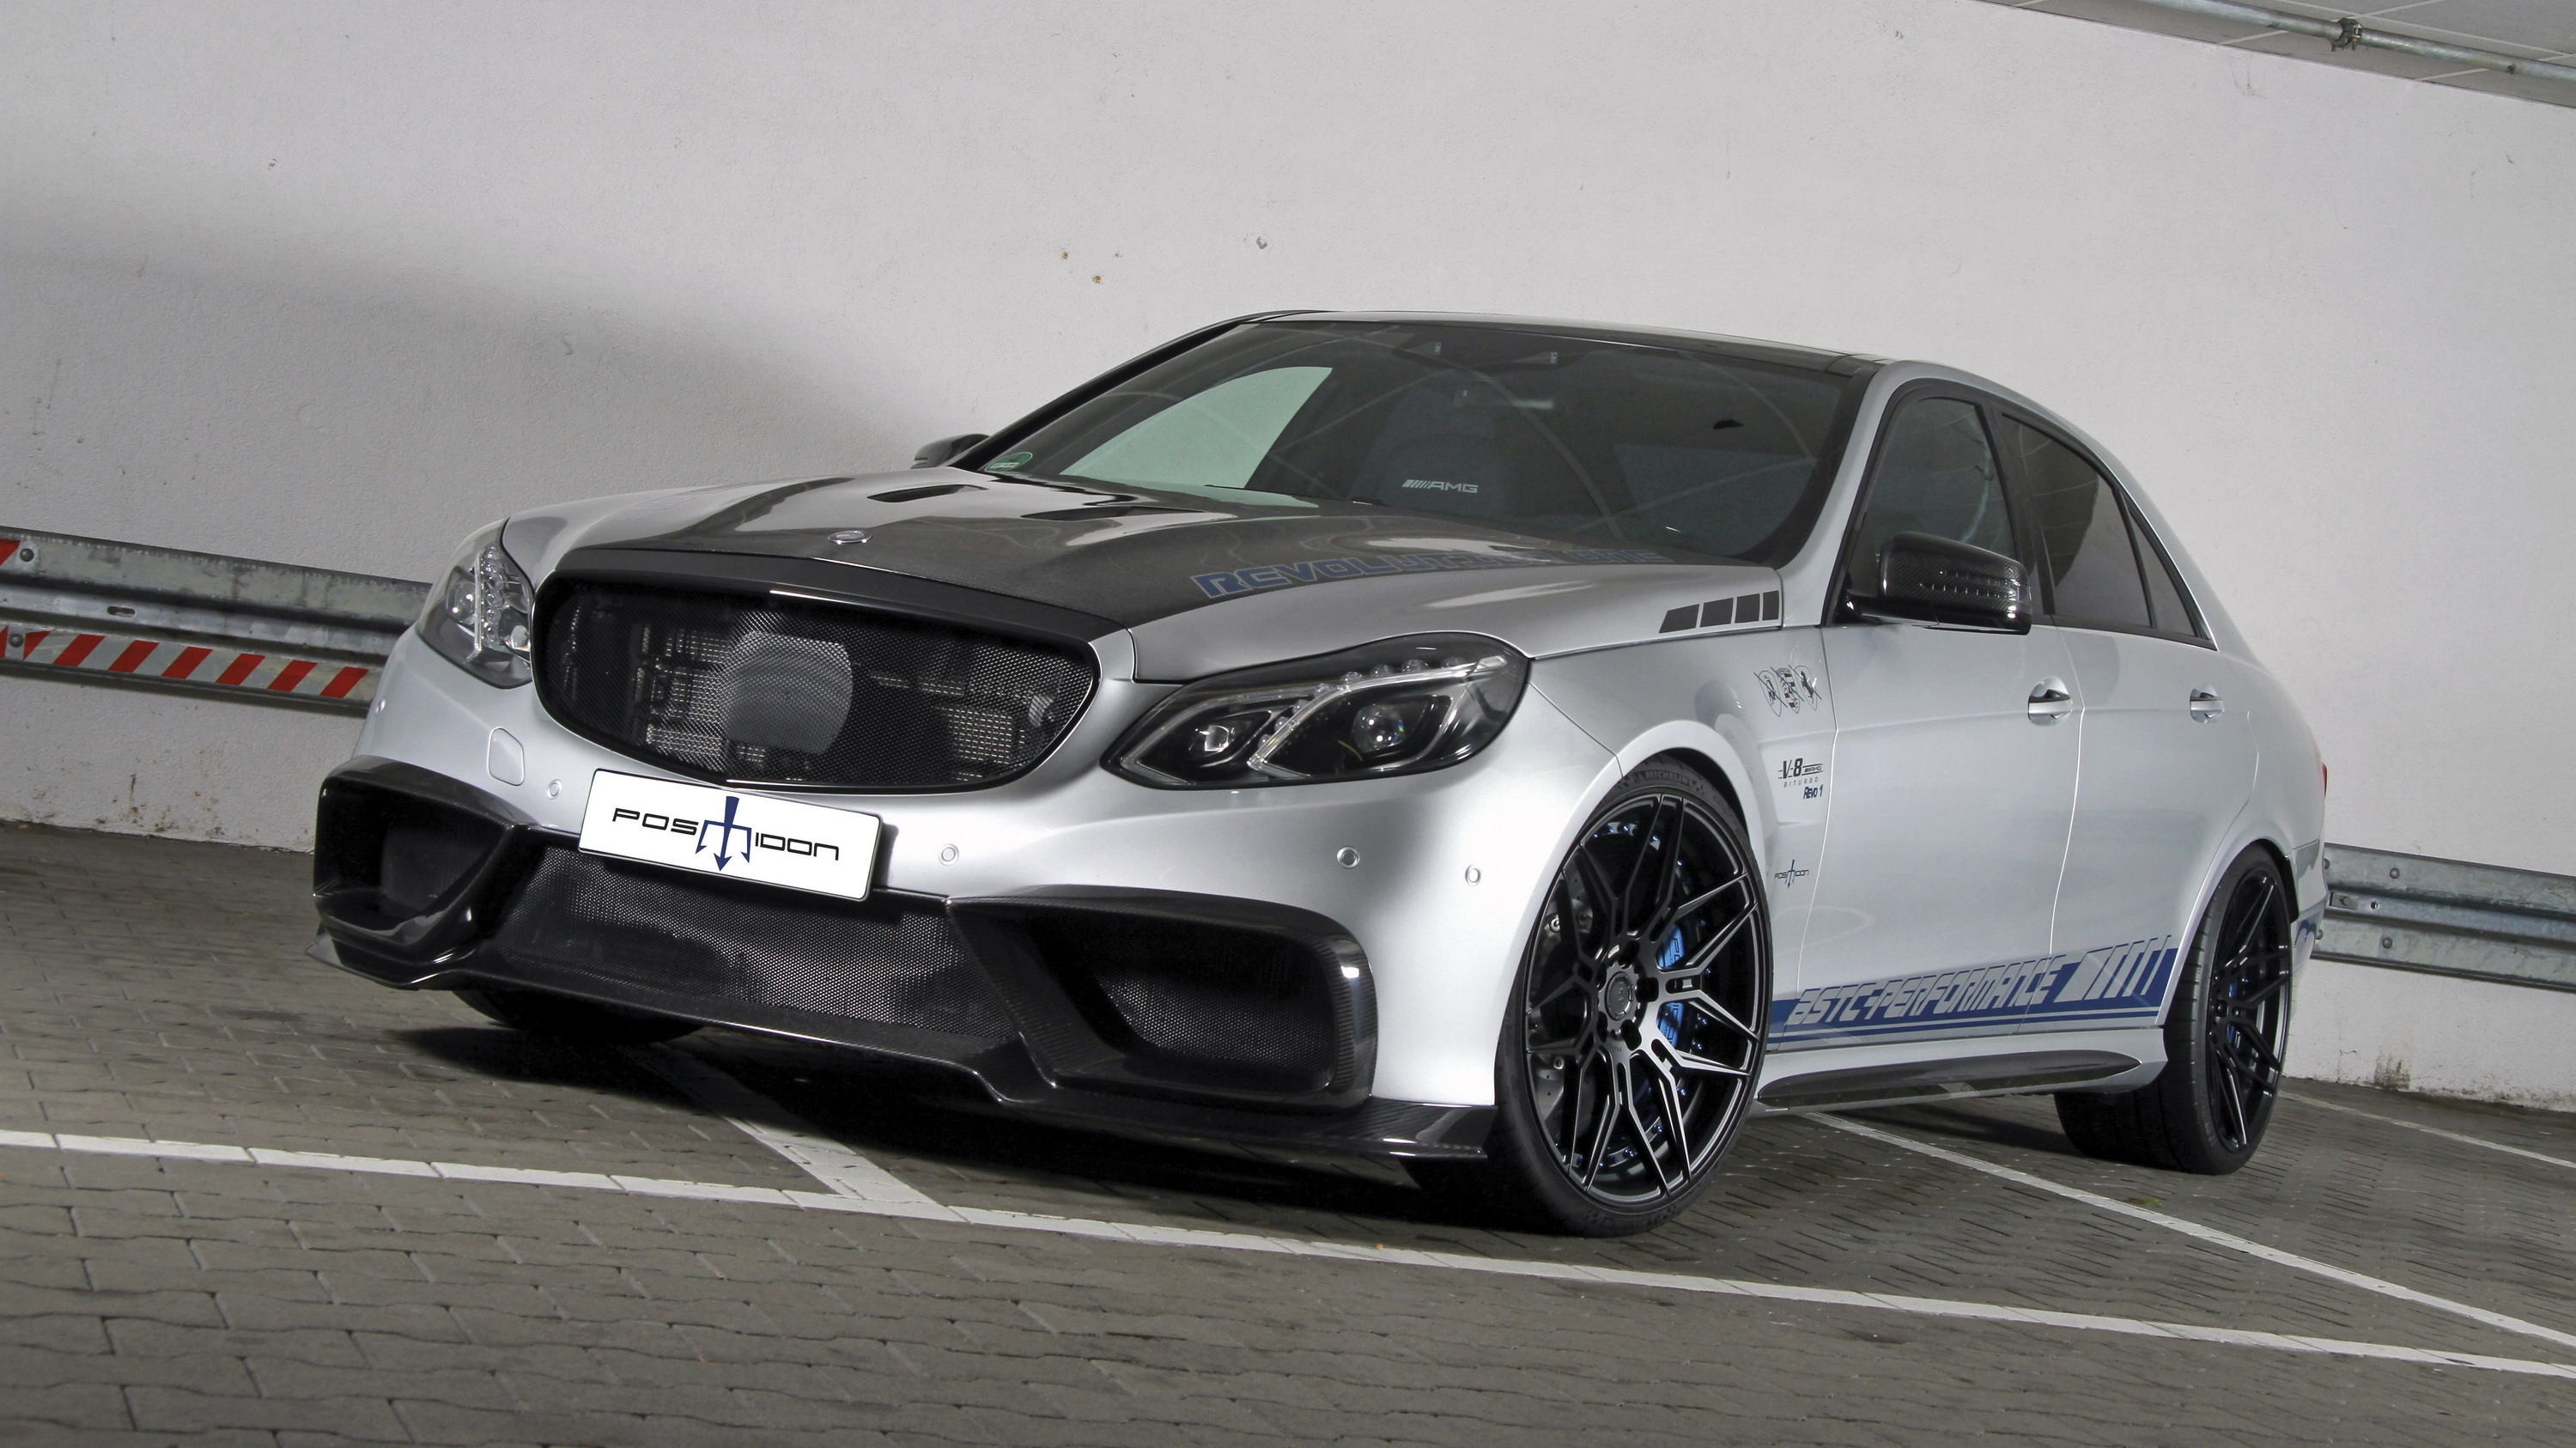 2016 mercedes amg e63 rs850 by posaidon top speed